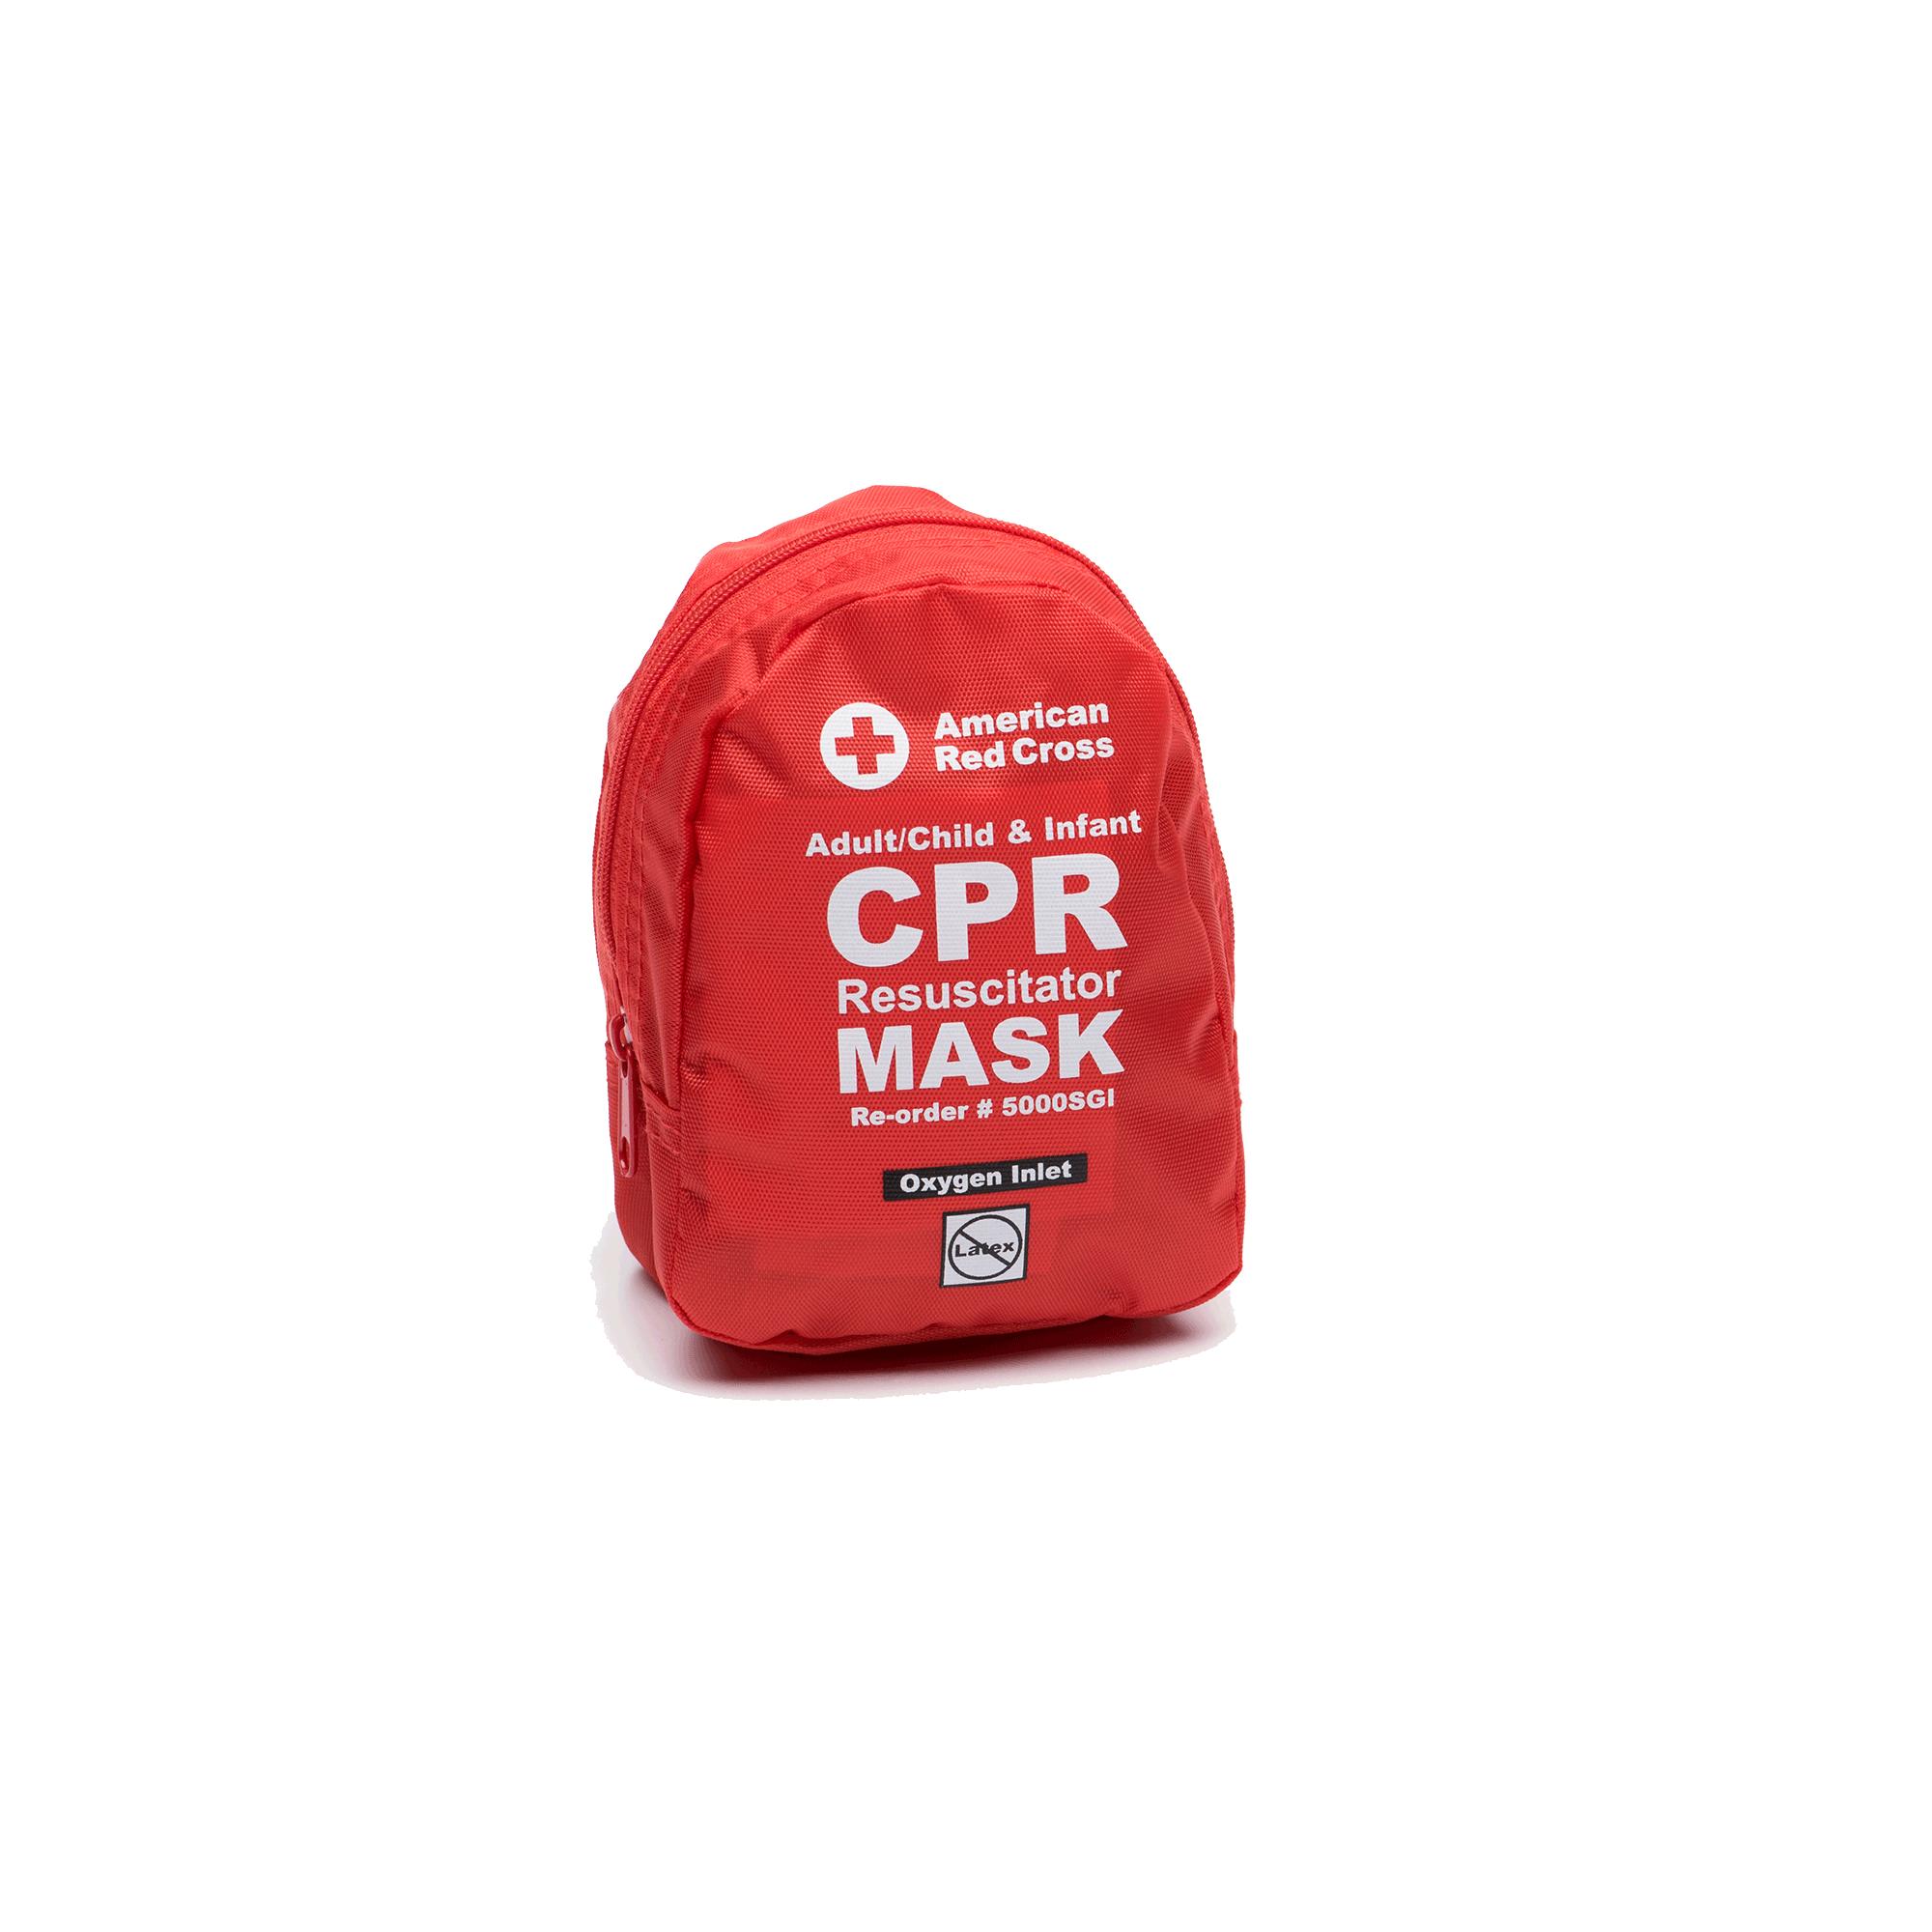 Cpr first aid medical training supplies red cross store adultchild and infant cpr mask 1betcityfo Image collections